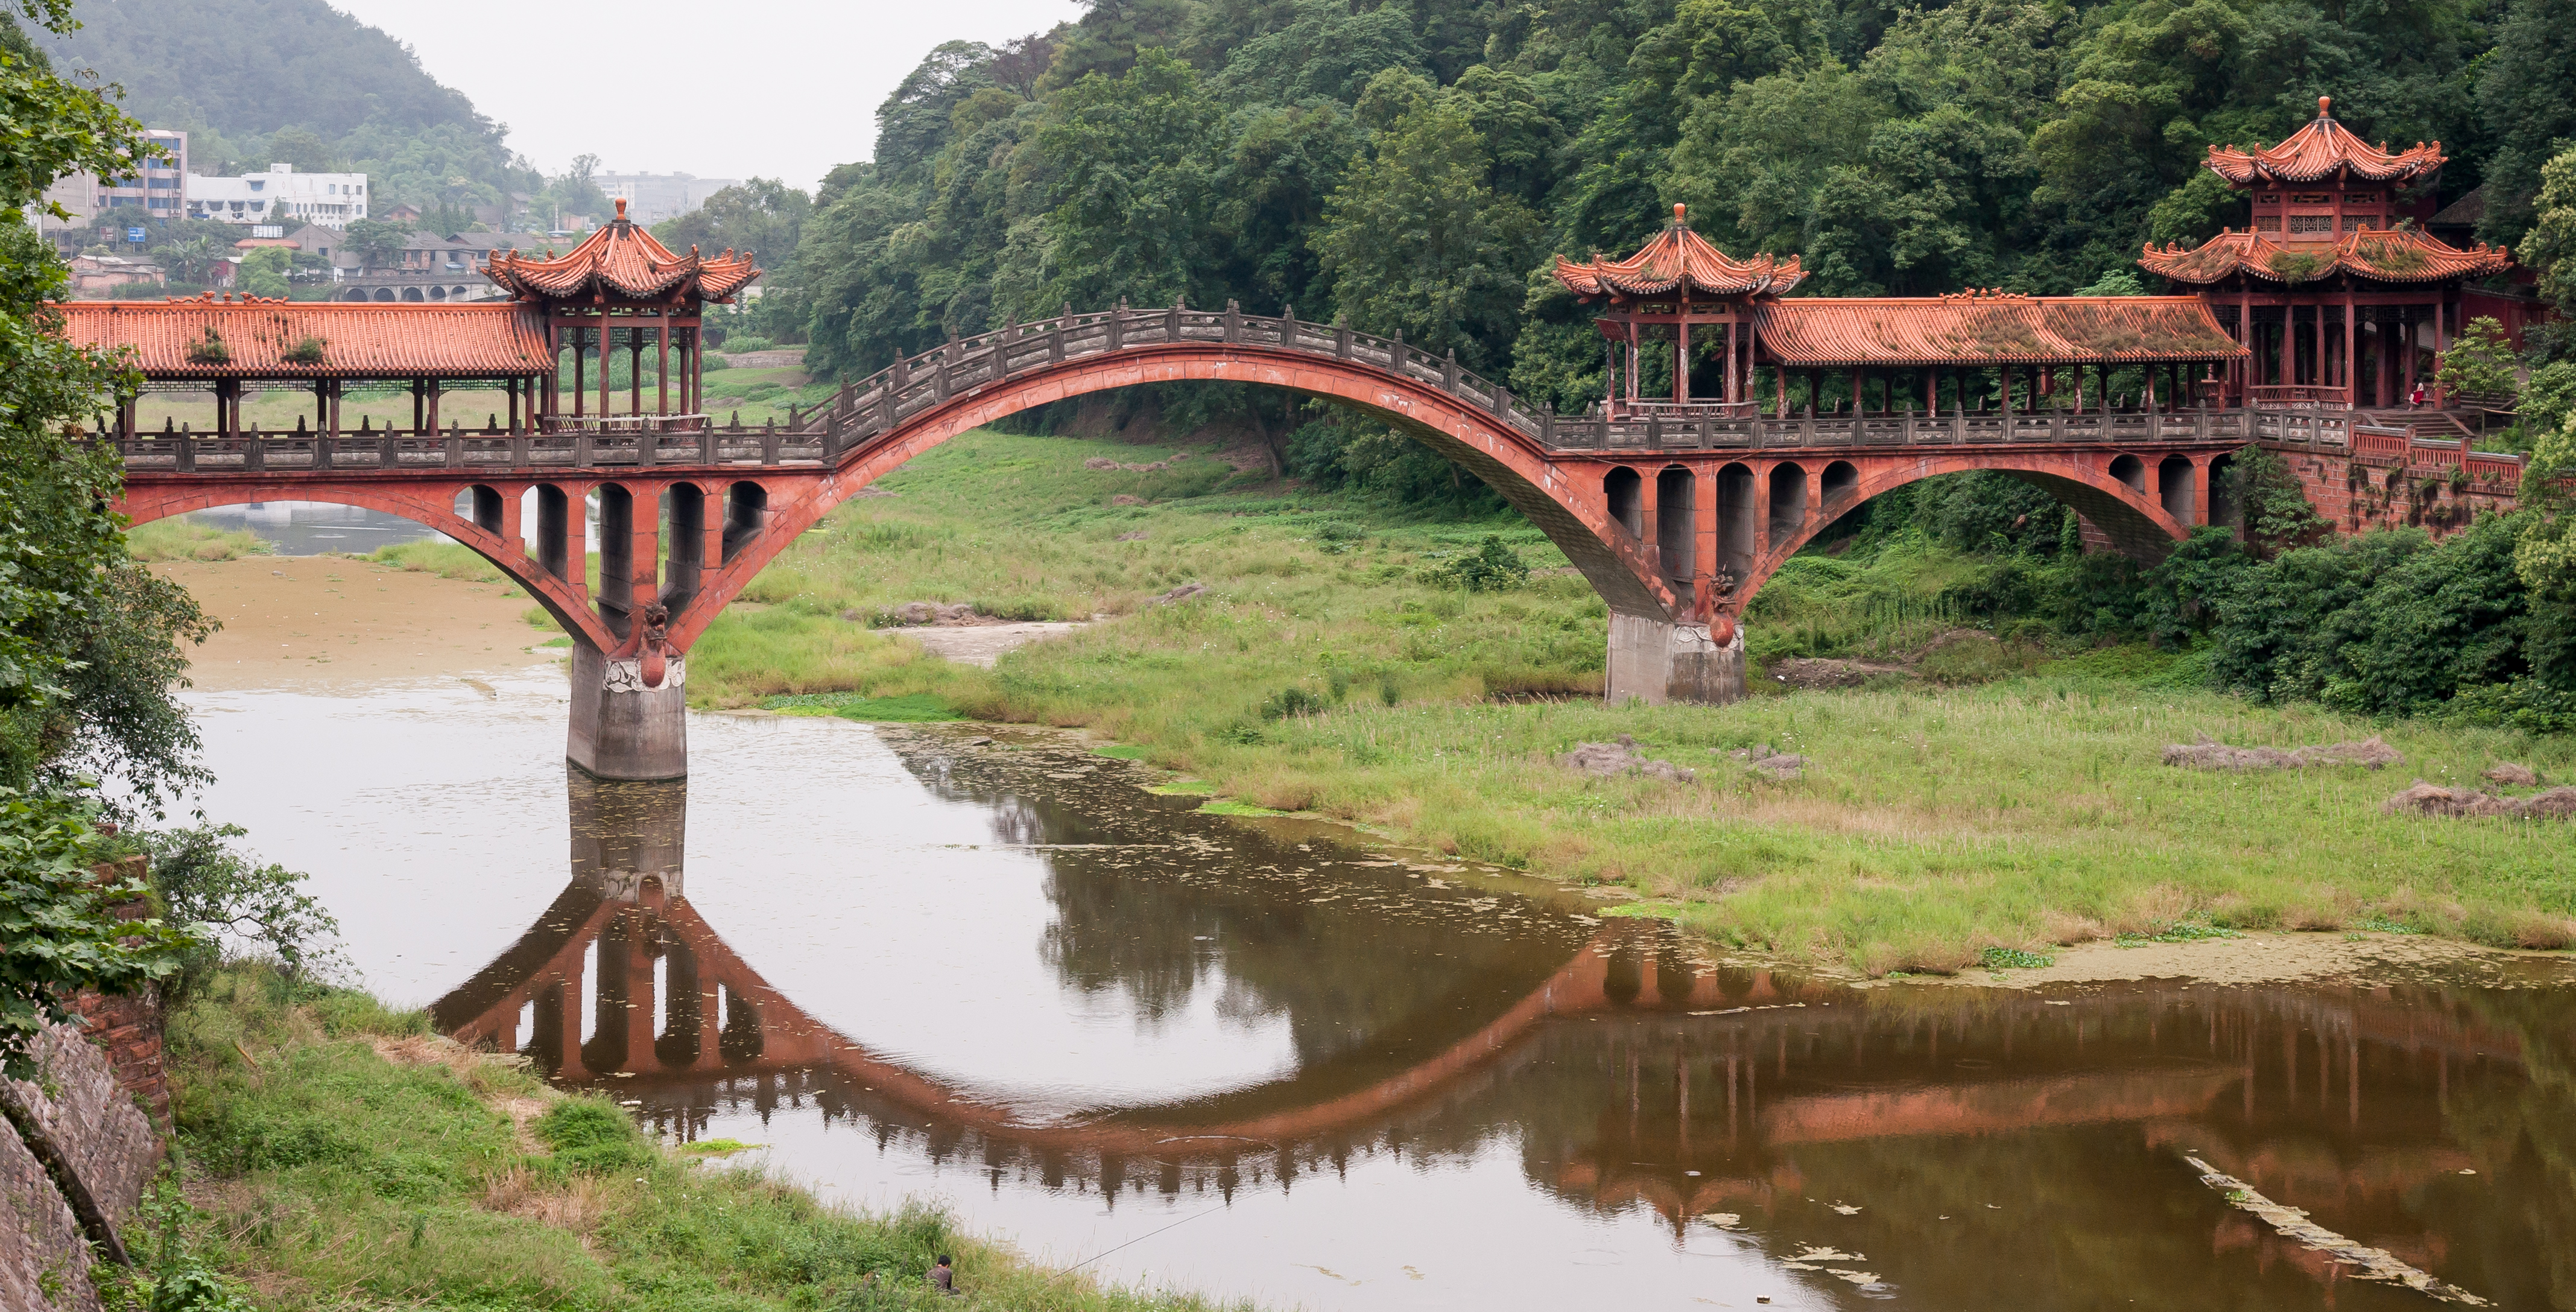 Leshan China  City new picture : the old stone arch bridge at leshan china